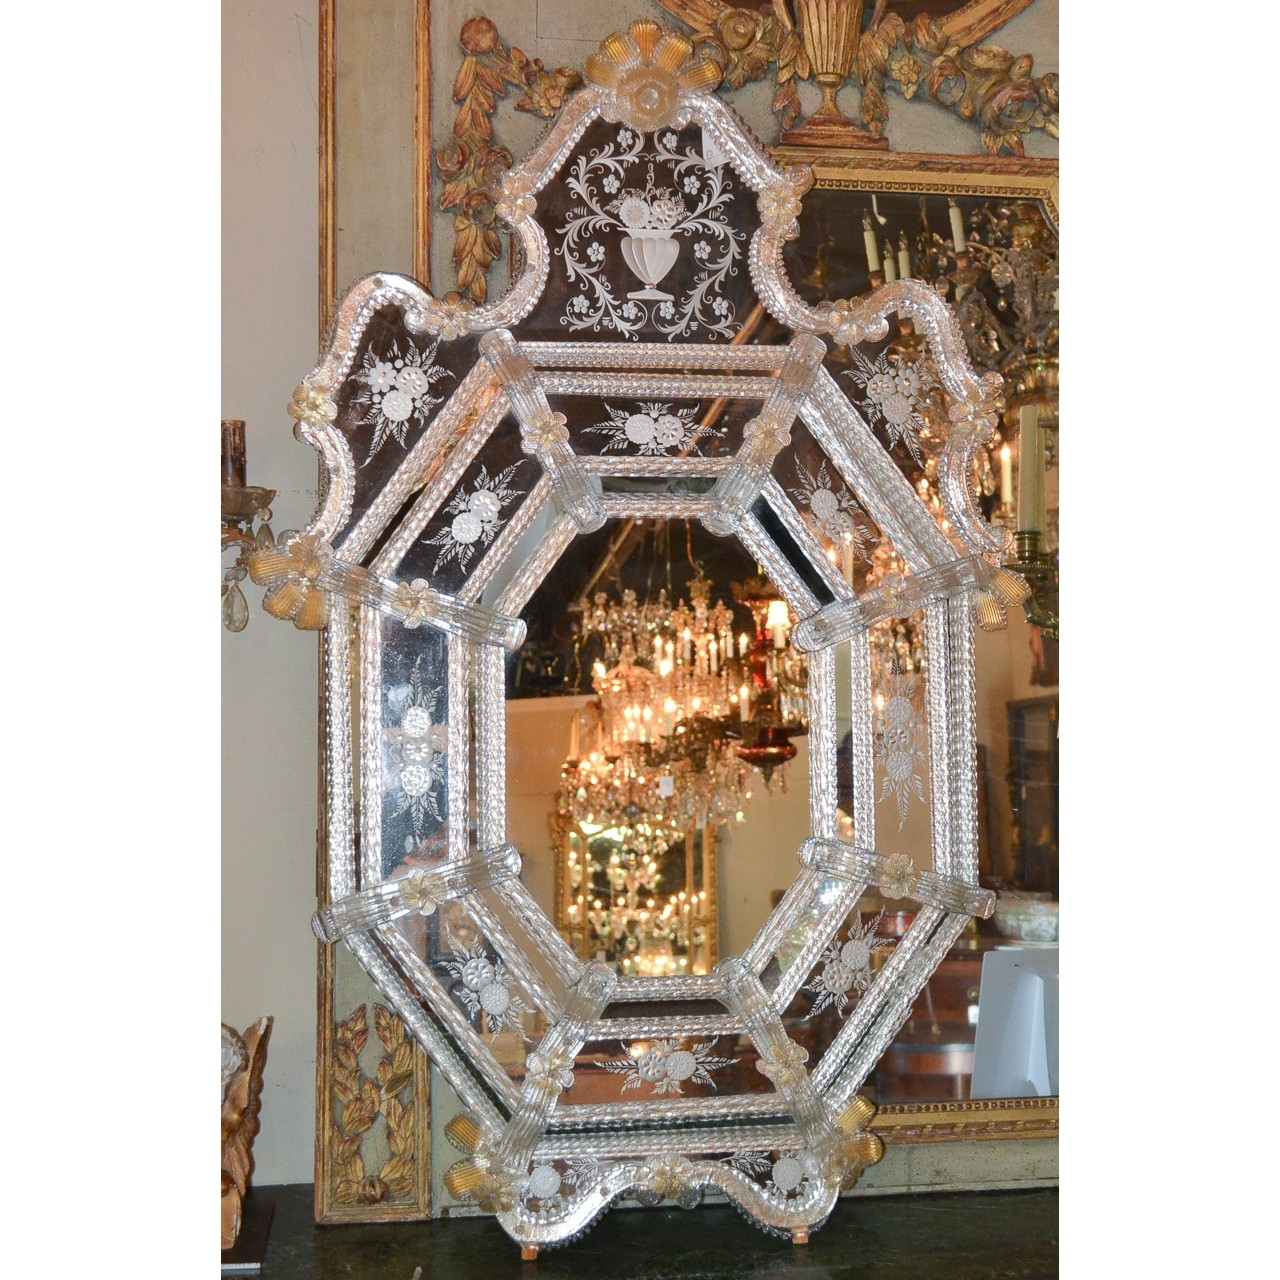 Beautiful Antique Venetian Etched Glass Mirror Legacy Antiques Inside Venetian Glass Mirrors Antique (Image 6 of 15)